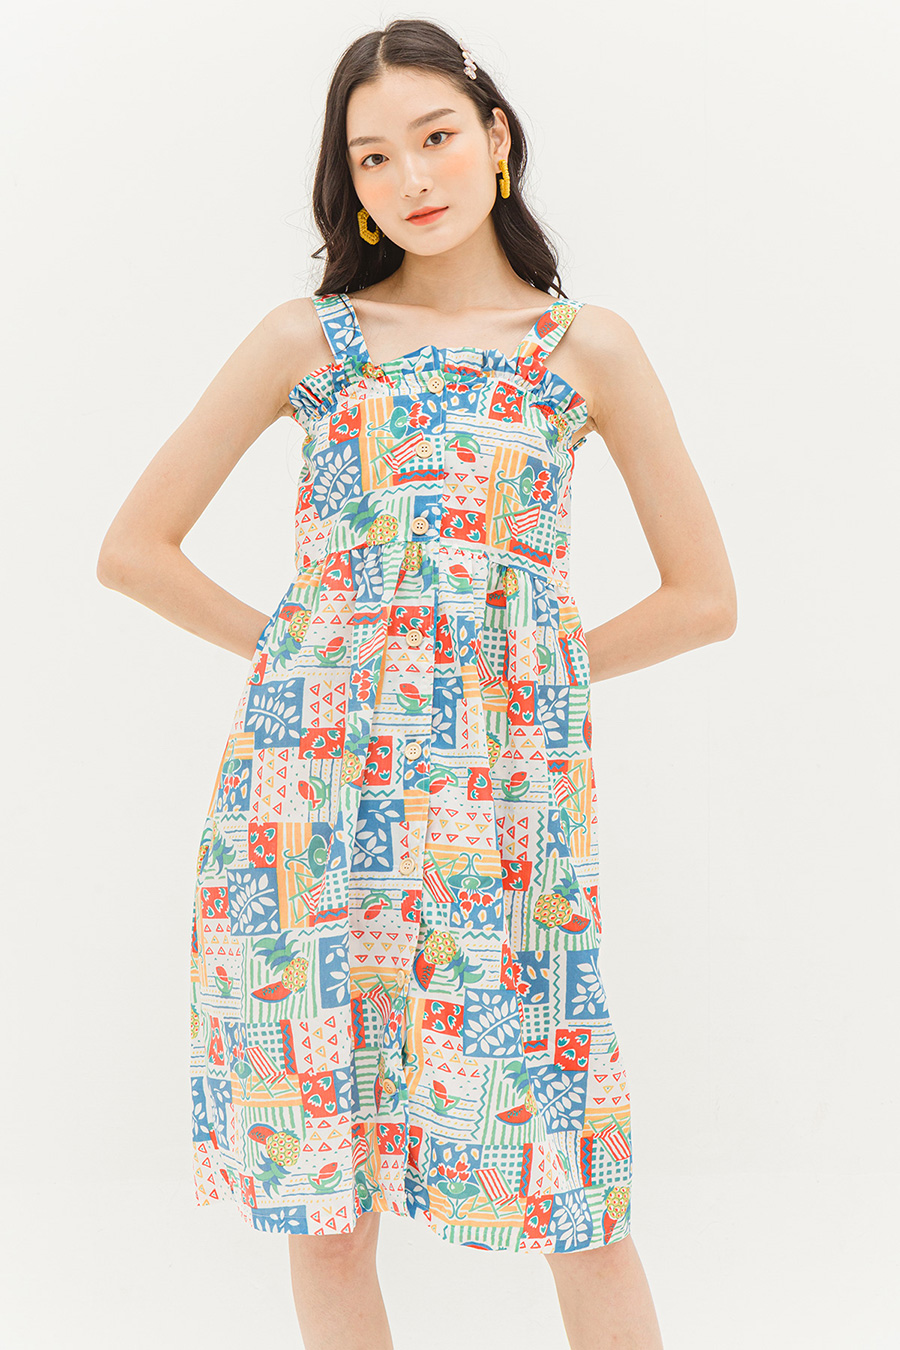 *BO* HARTLEY DRESS - PATCHWORK